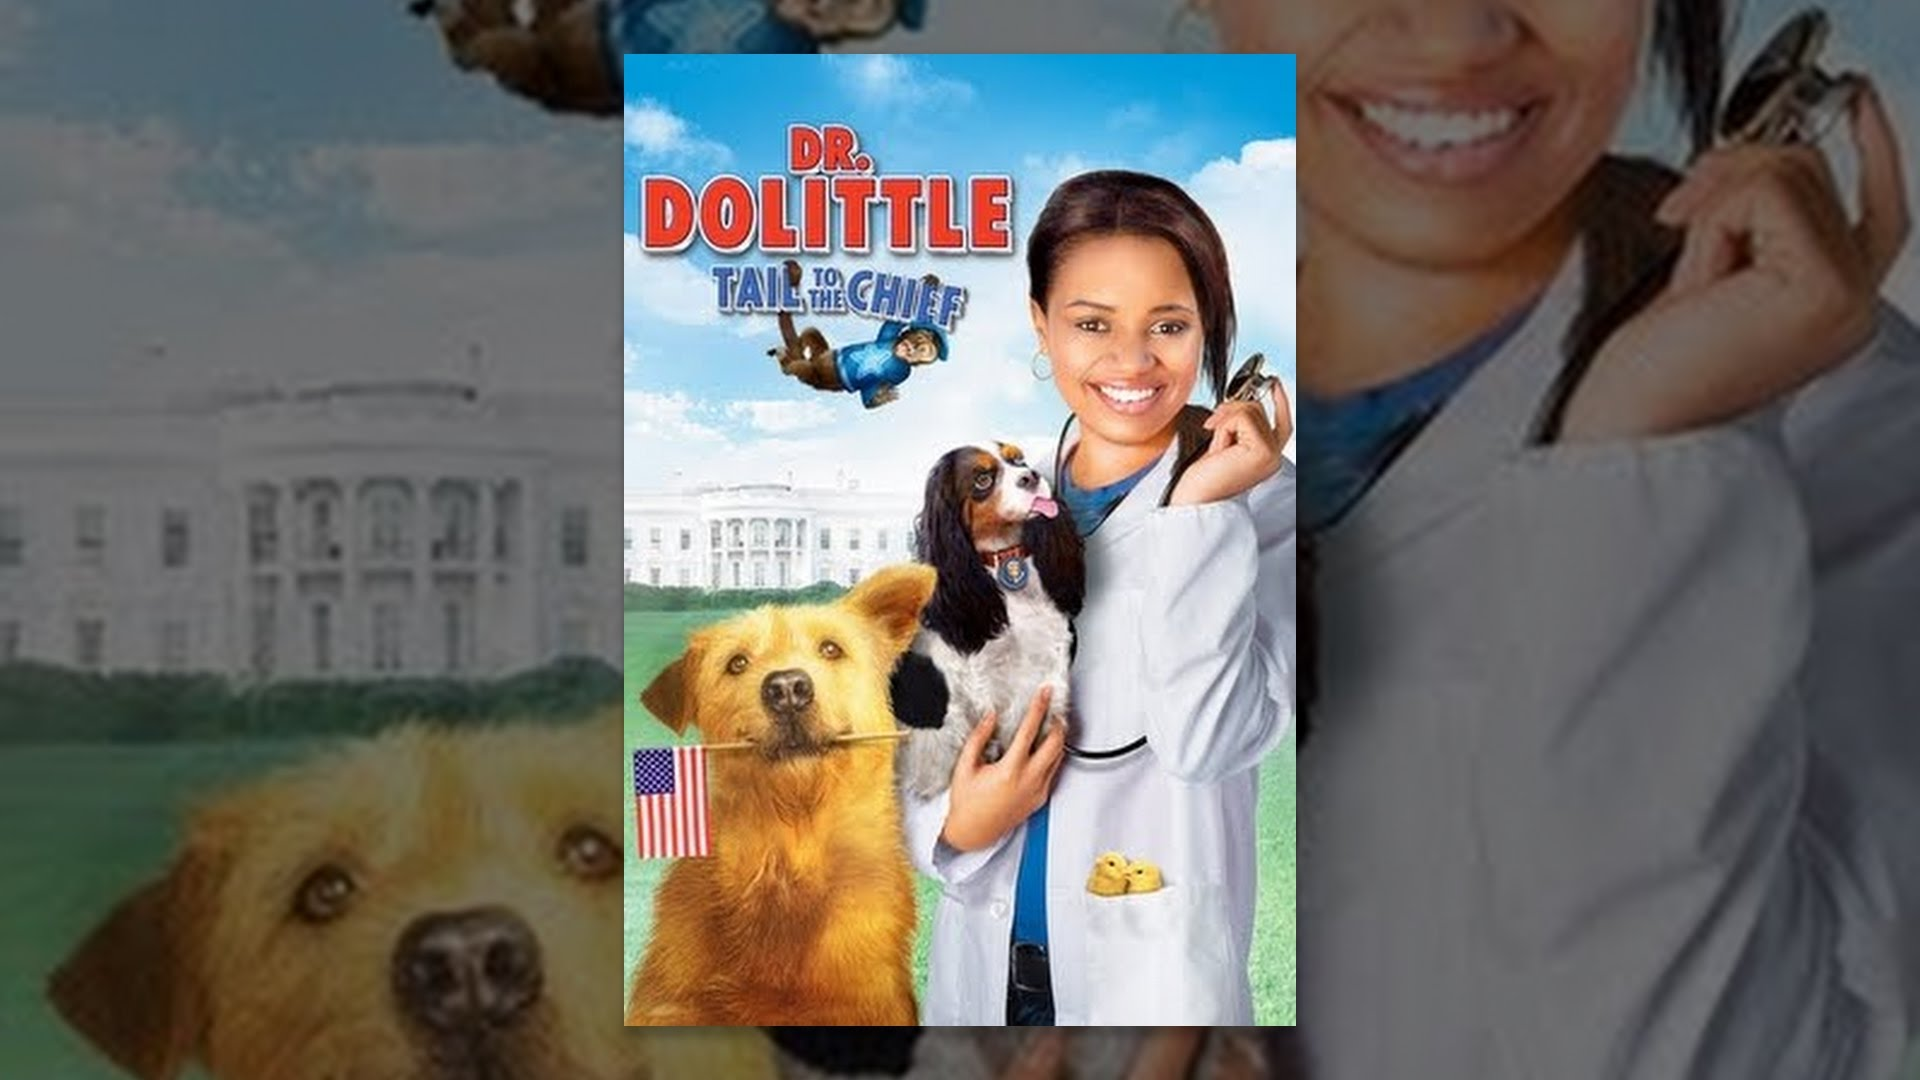 doctor dolittle tail to the chief full movie